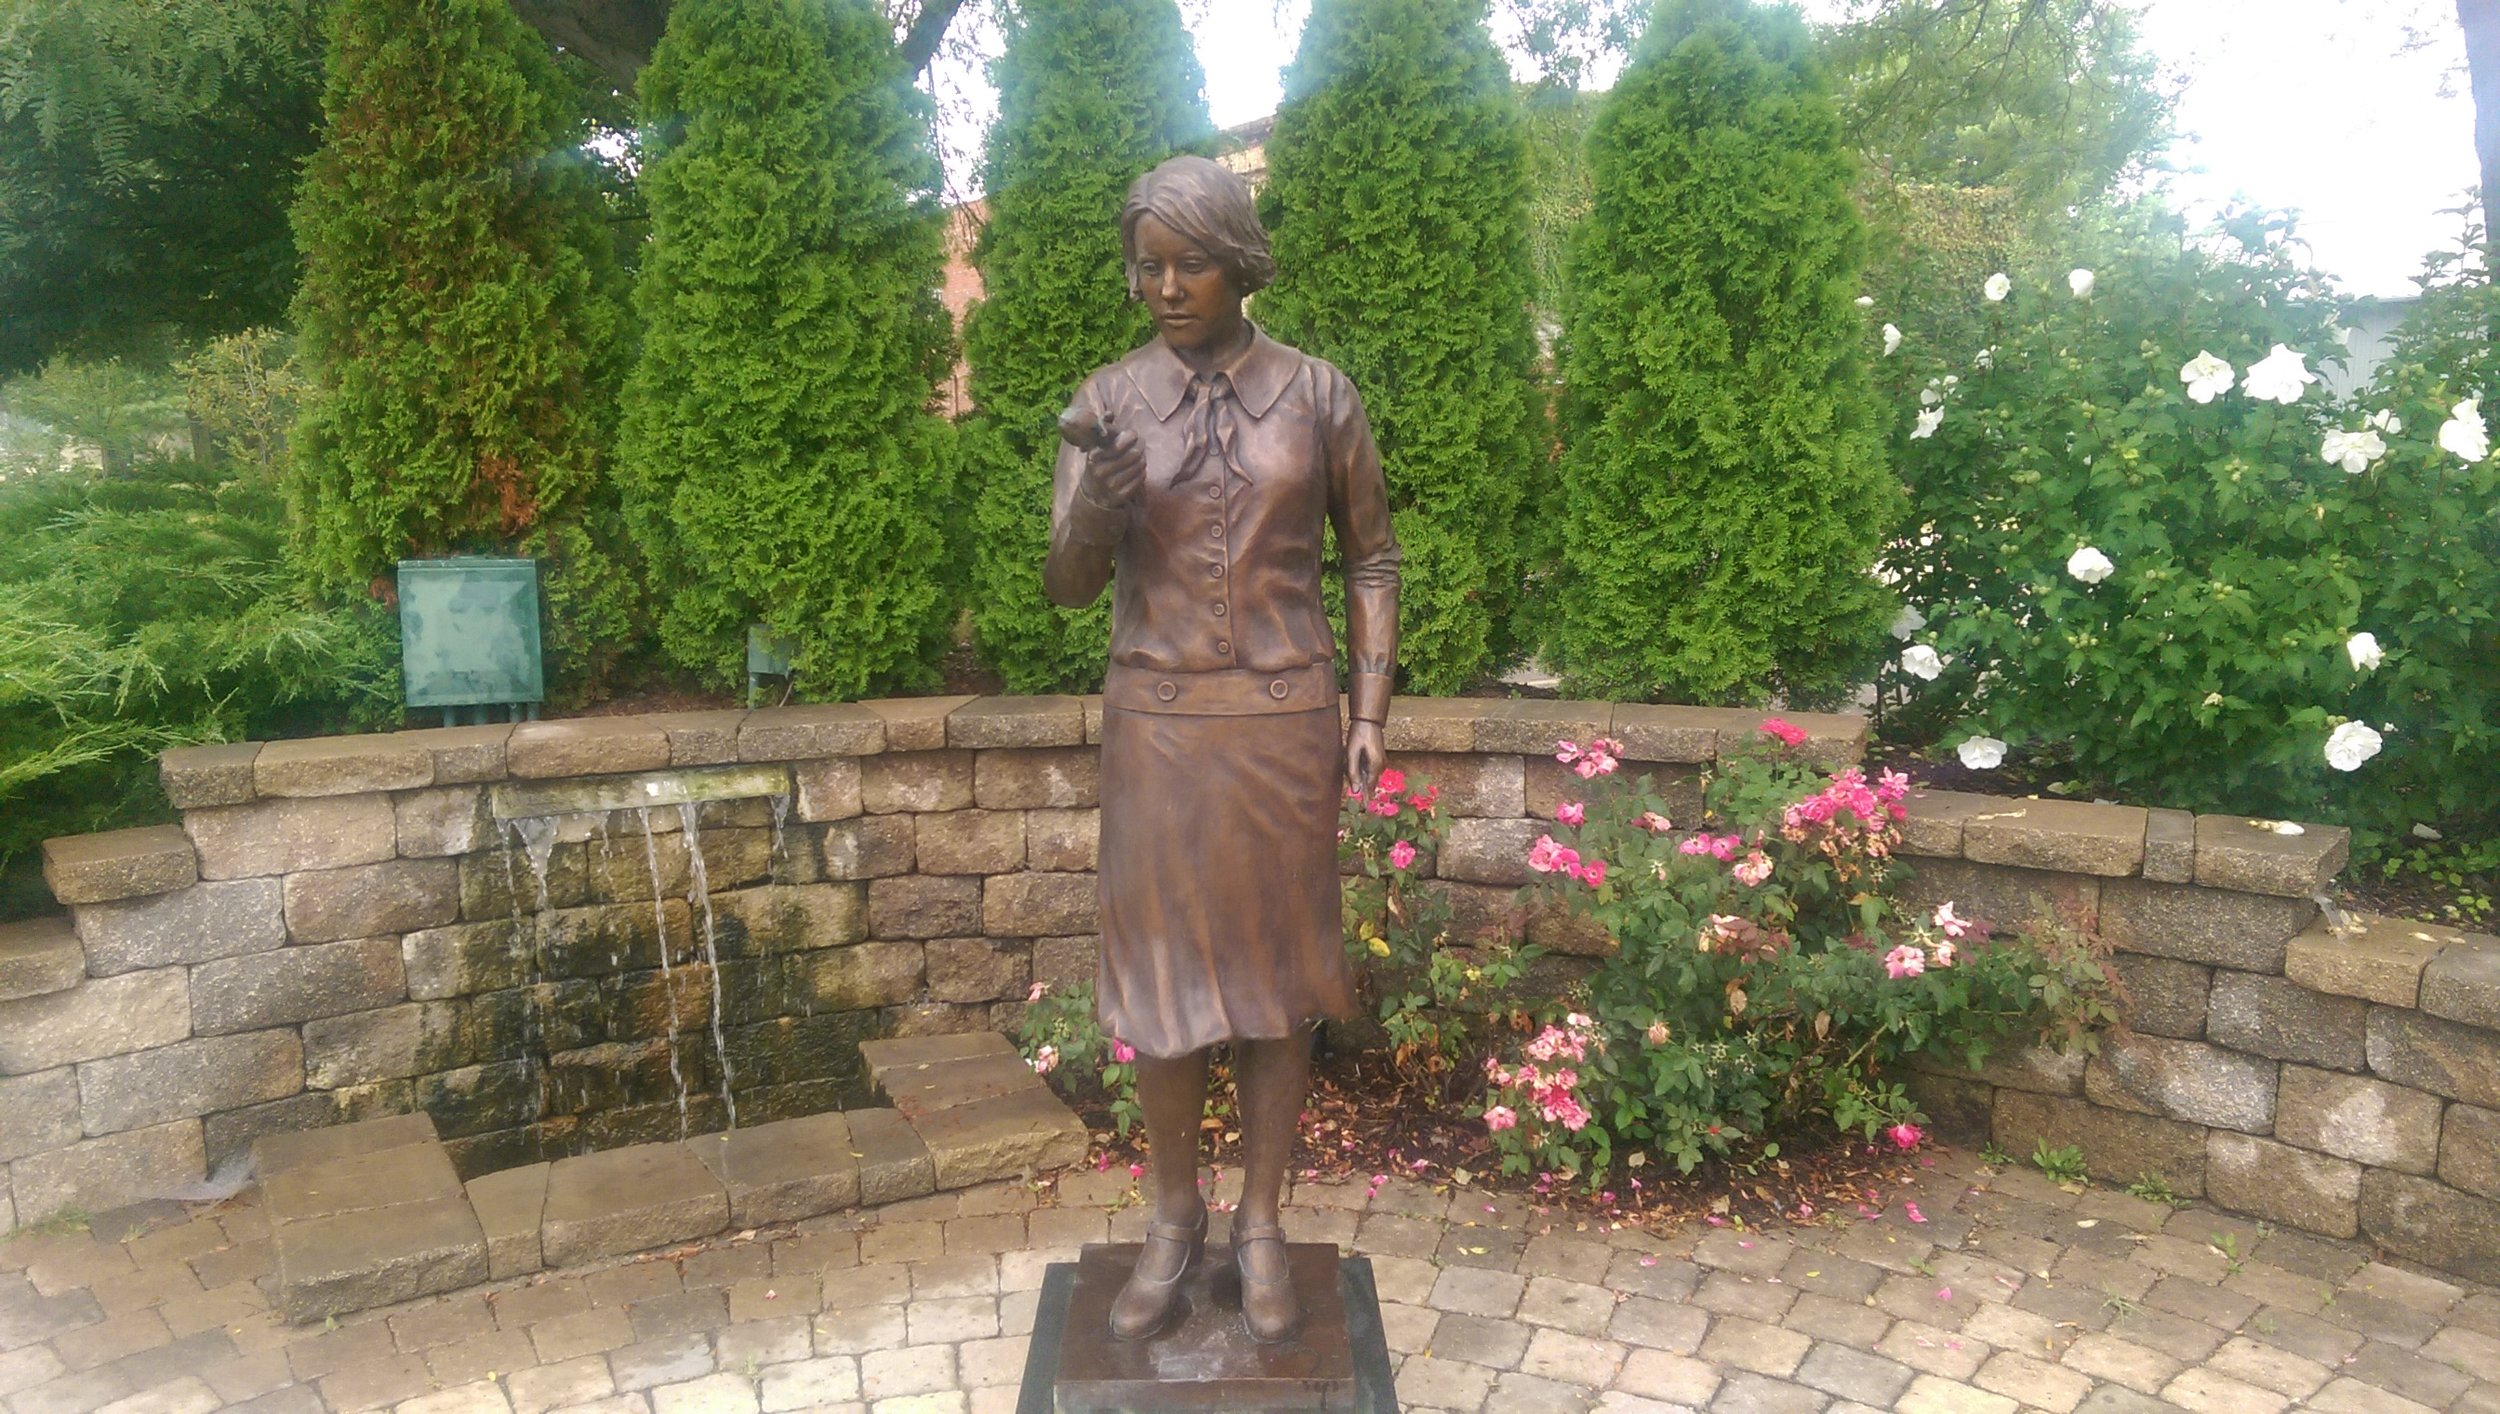 Ottawa's Darker Past, Radium Girls Memorial -